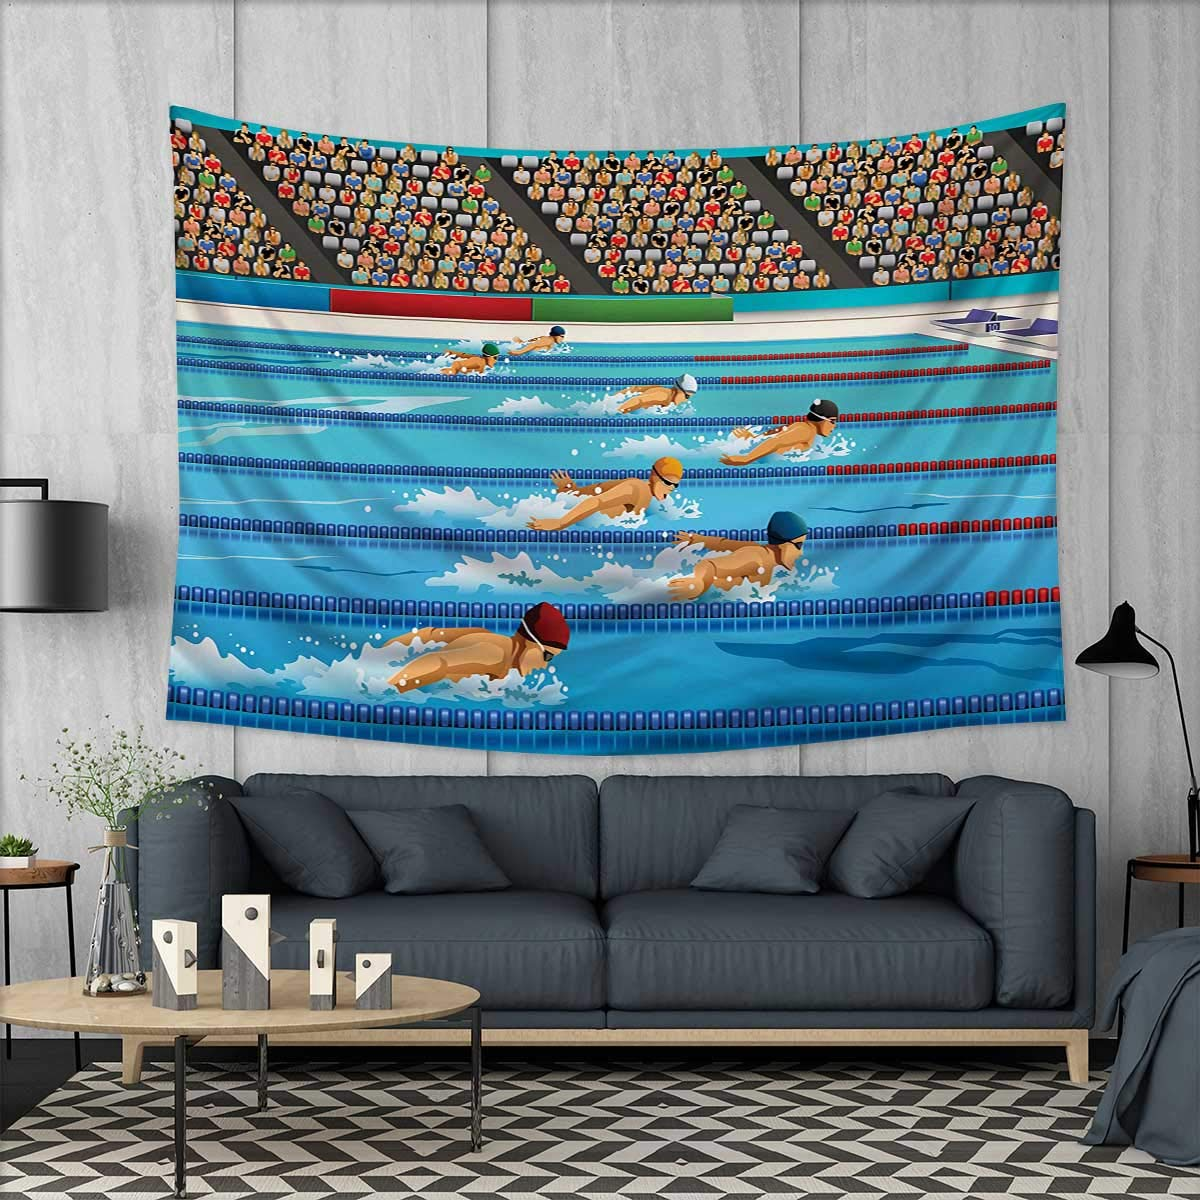 Anhuthree olympics wall hanging tapestries illustration of swimmers during swimming competition sports theme cartoon art large tablecloths 84x54 blue